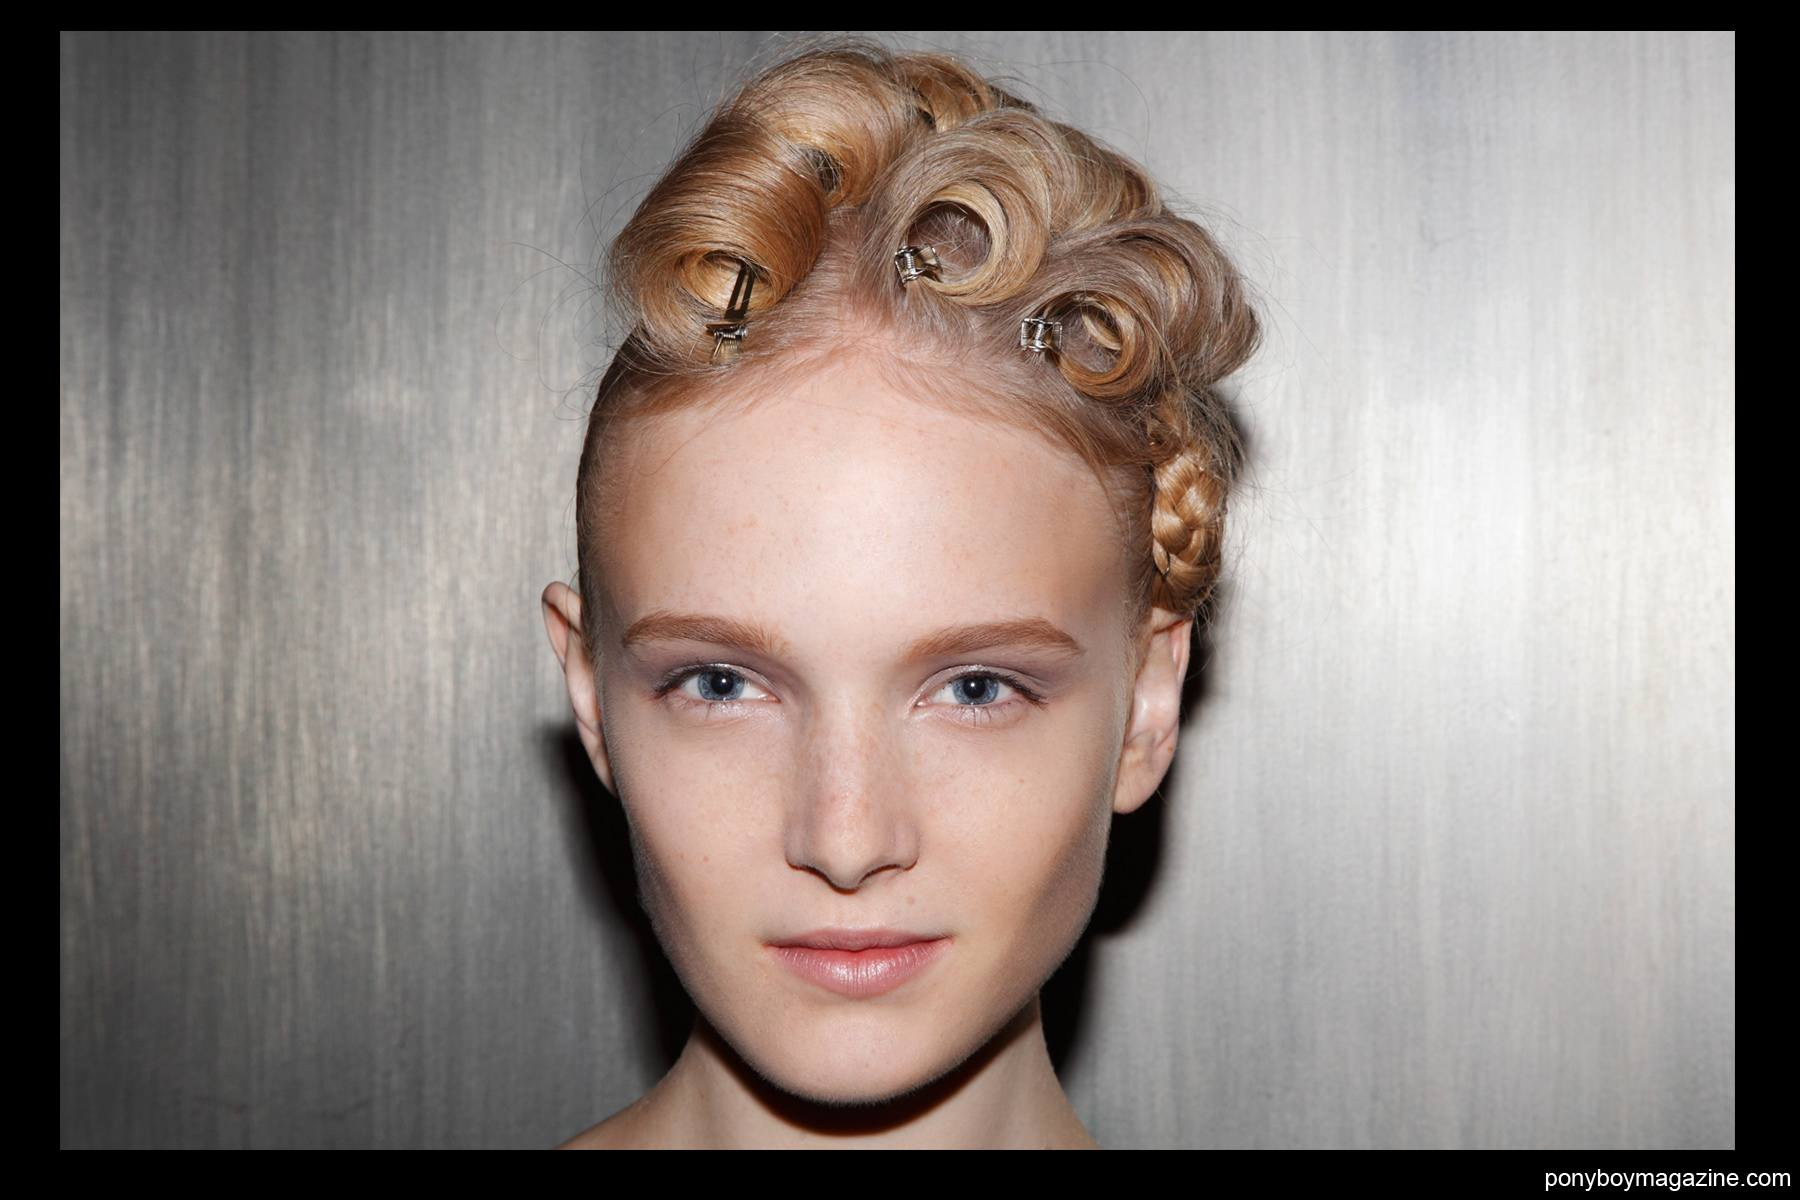 Backstage hair/makeup at Alexandre Herchcovitch SS2014 for Ponyboy Magazine by Alexander Thompson.